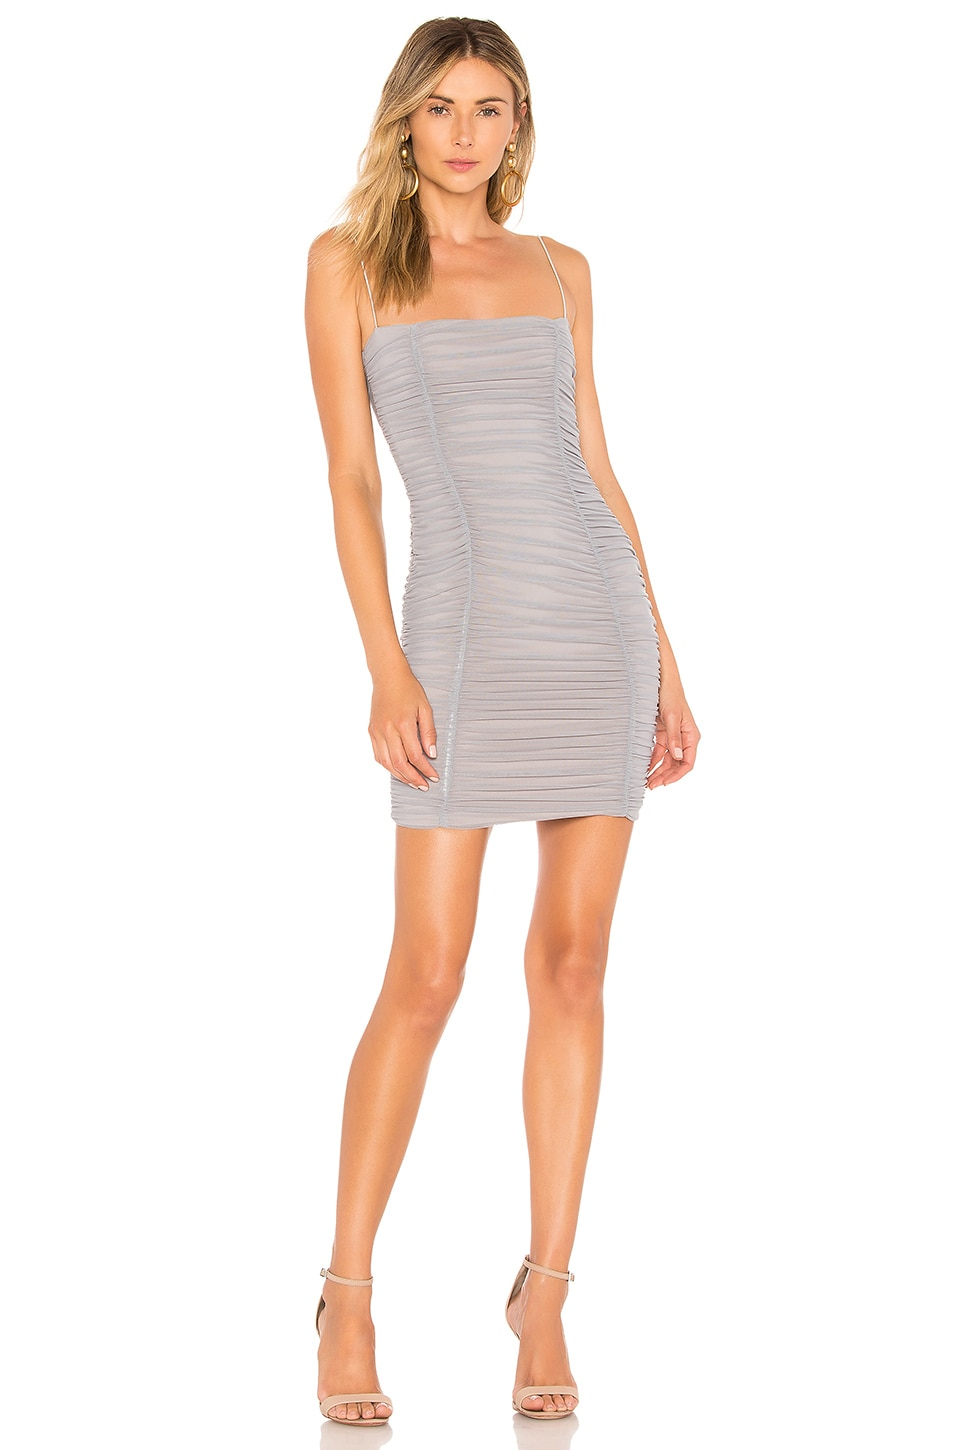 Mystic Mesh Mini Dress